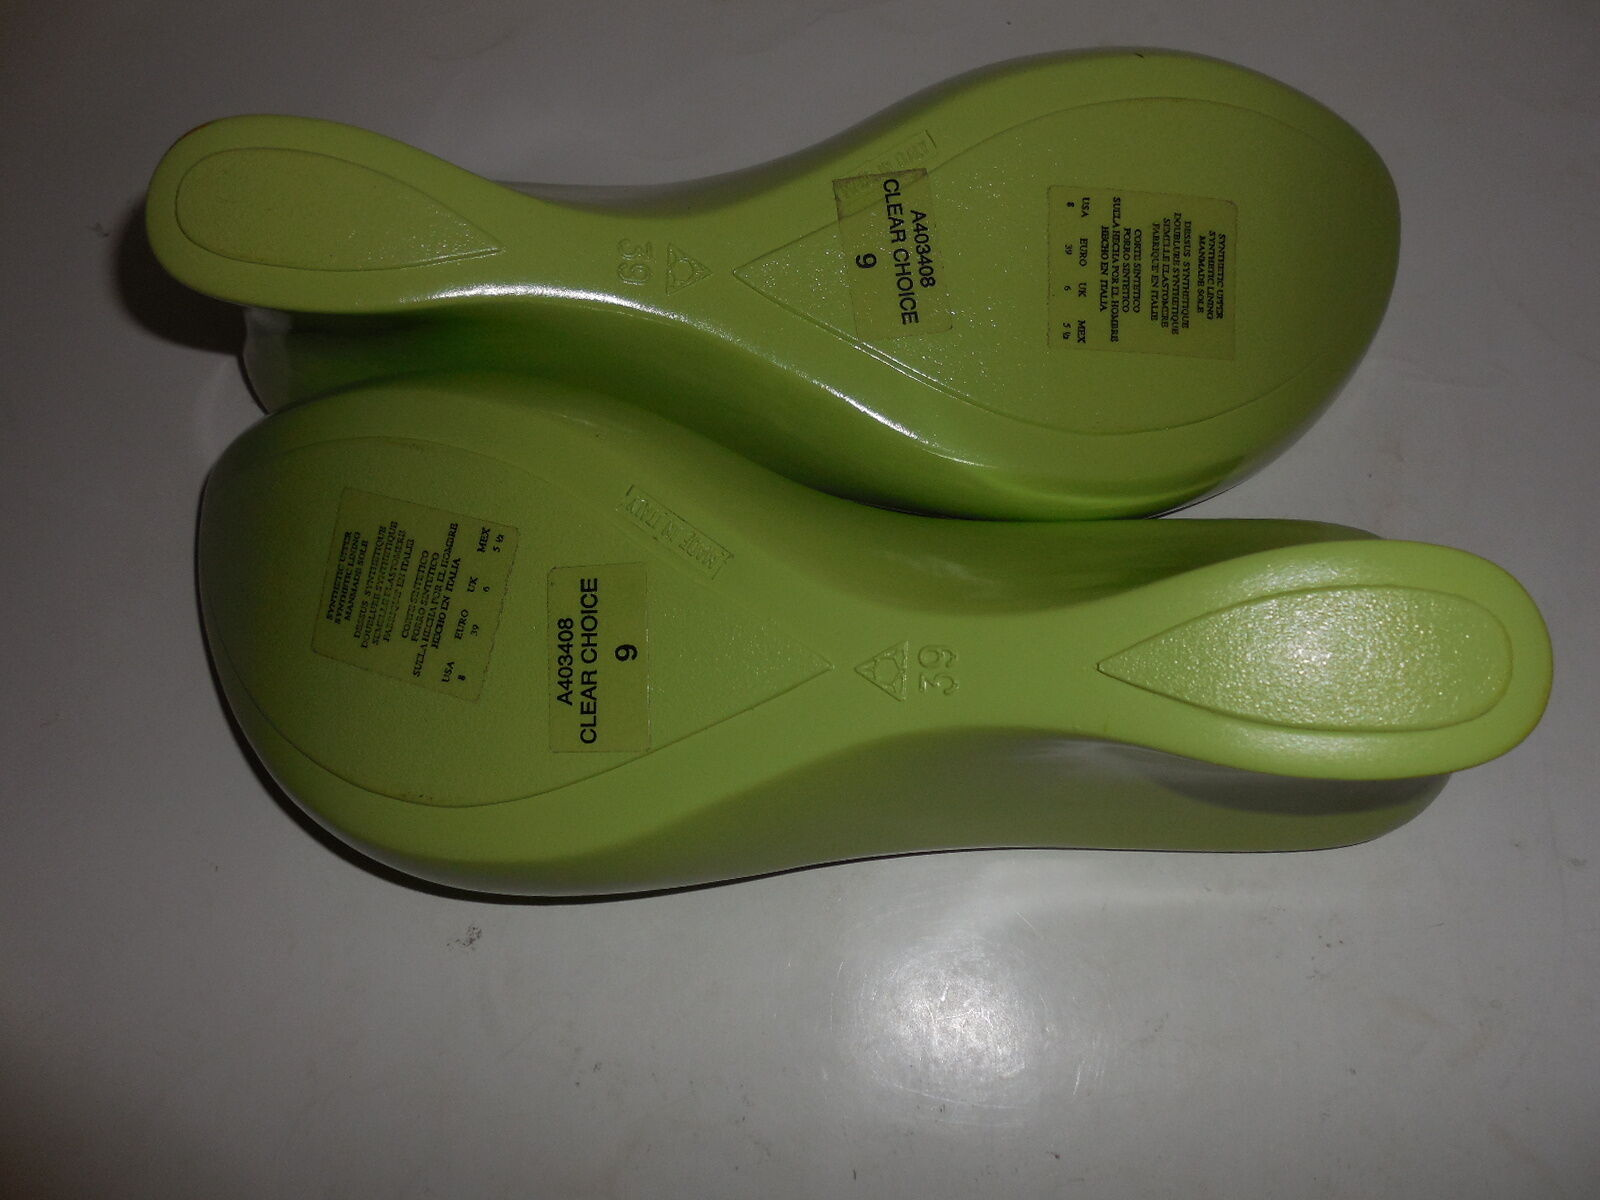 New Sz.39 Sz.39 Sz.39  9 Kenneth Cole Reaction  Wedges Platform Green Sandals(Made in ) 9ed758